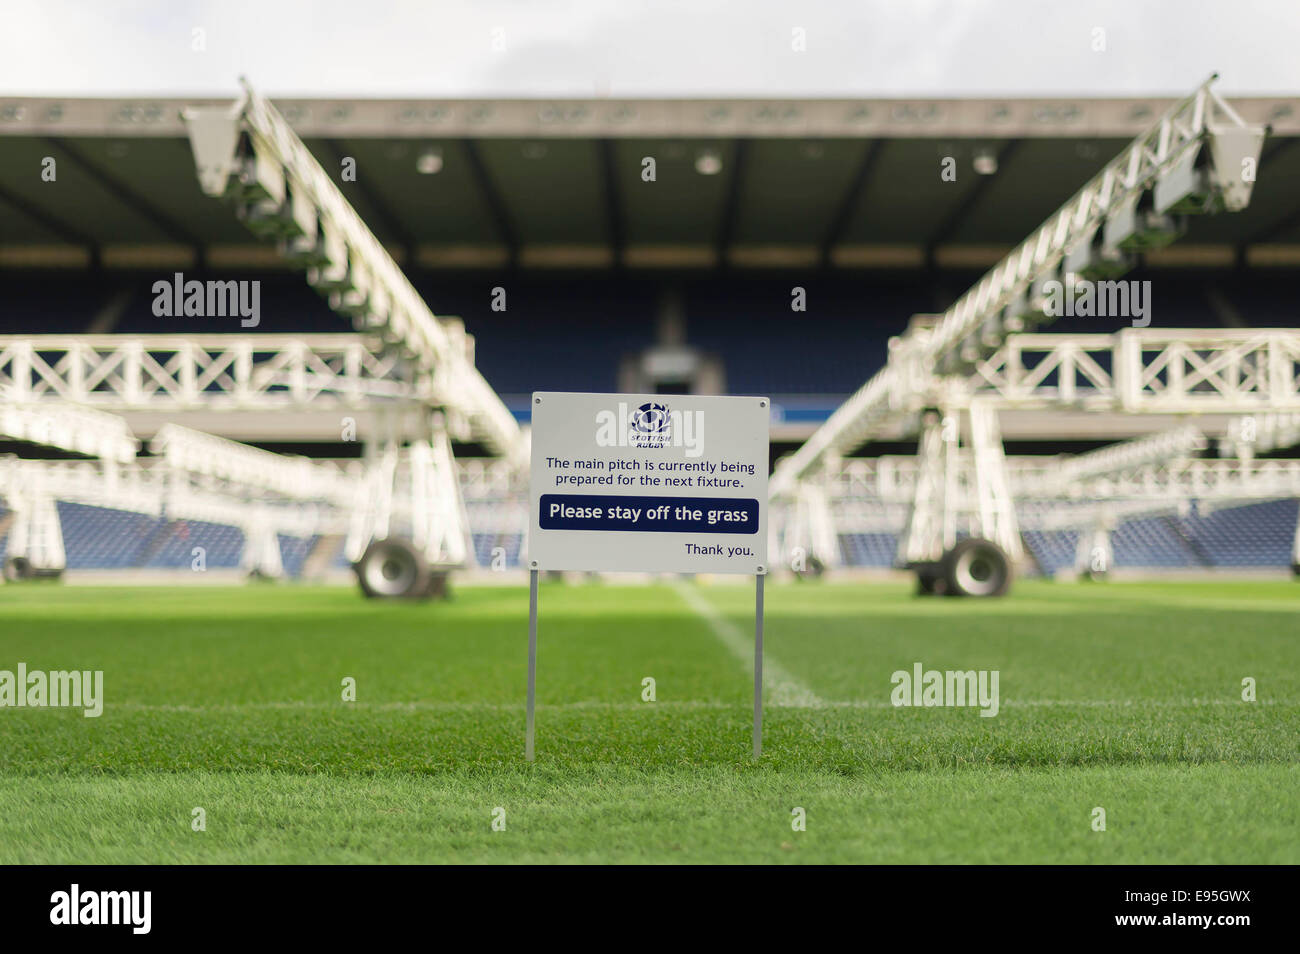 Edinburgh, Scotland, UK. 20th October, 2014. The new pitch at Murrayfield that combines artificial and real grass - Stock Image